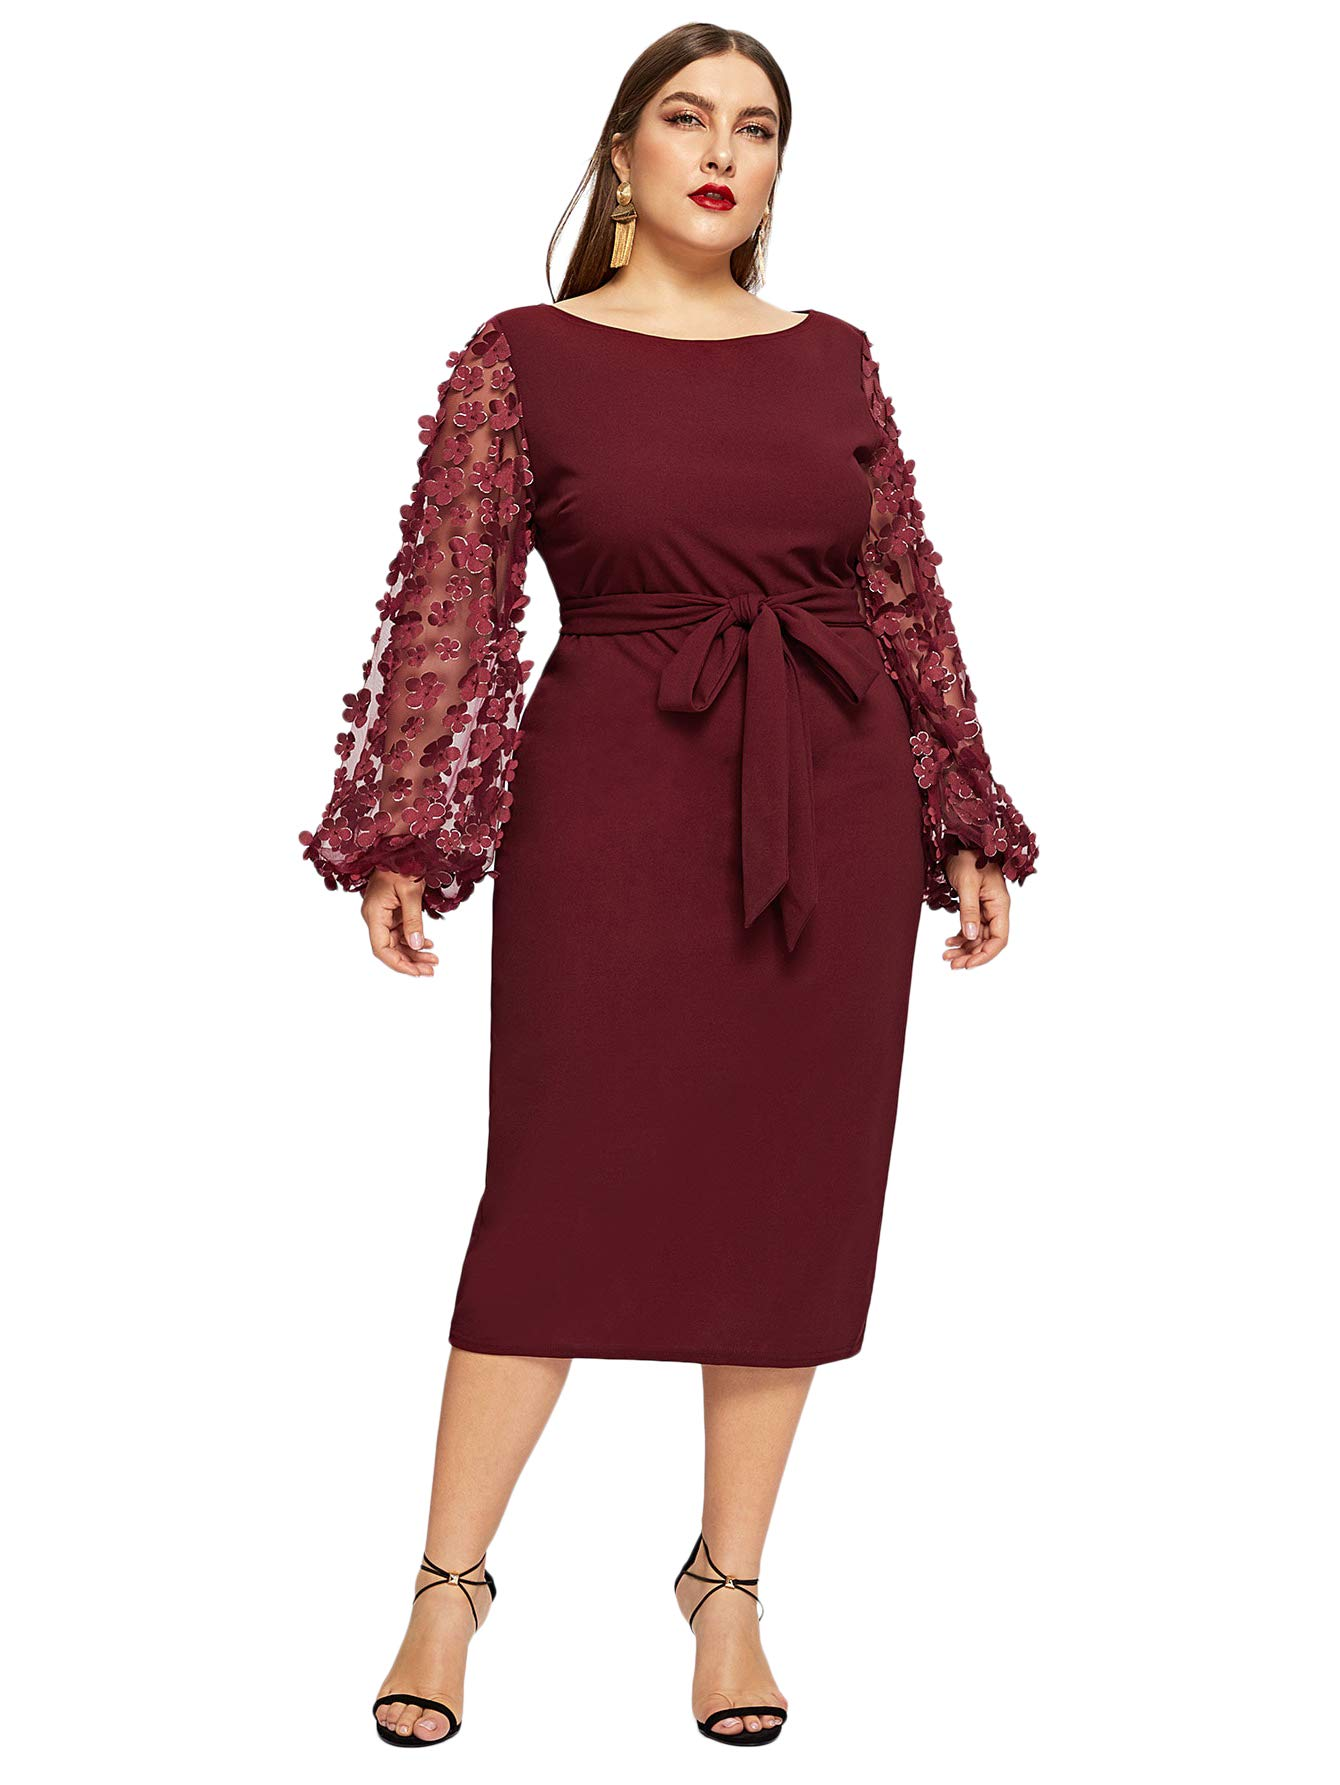 1713258cc0d0a SheIn Women's Plus Size Elegant Mesh Contrast Pearl Beading Sleeve Stretchy  Bodycon Pencil Dress Burgundy